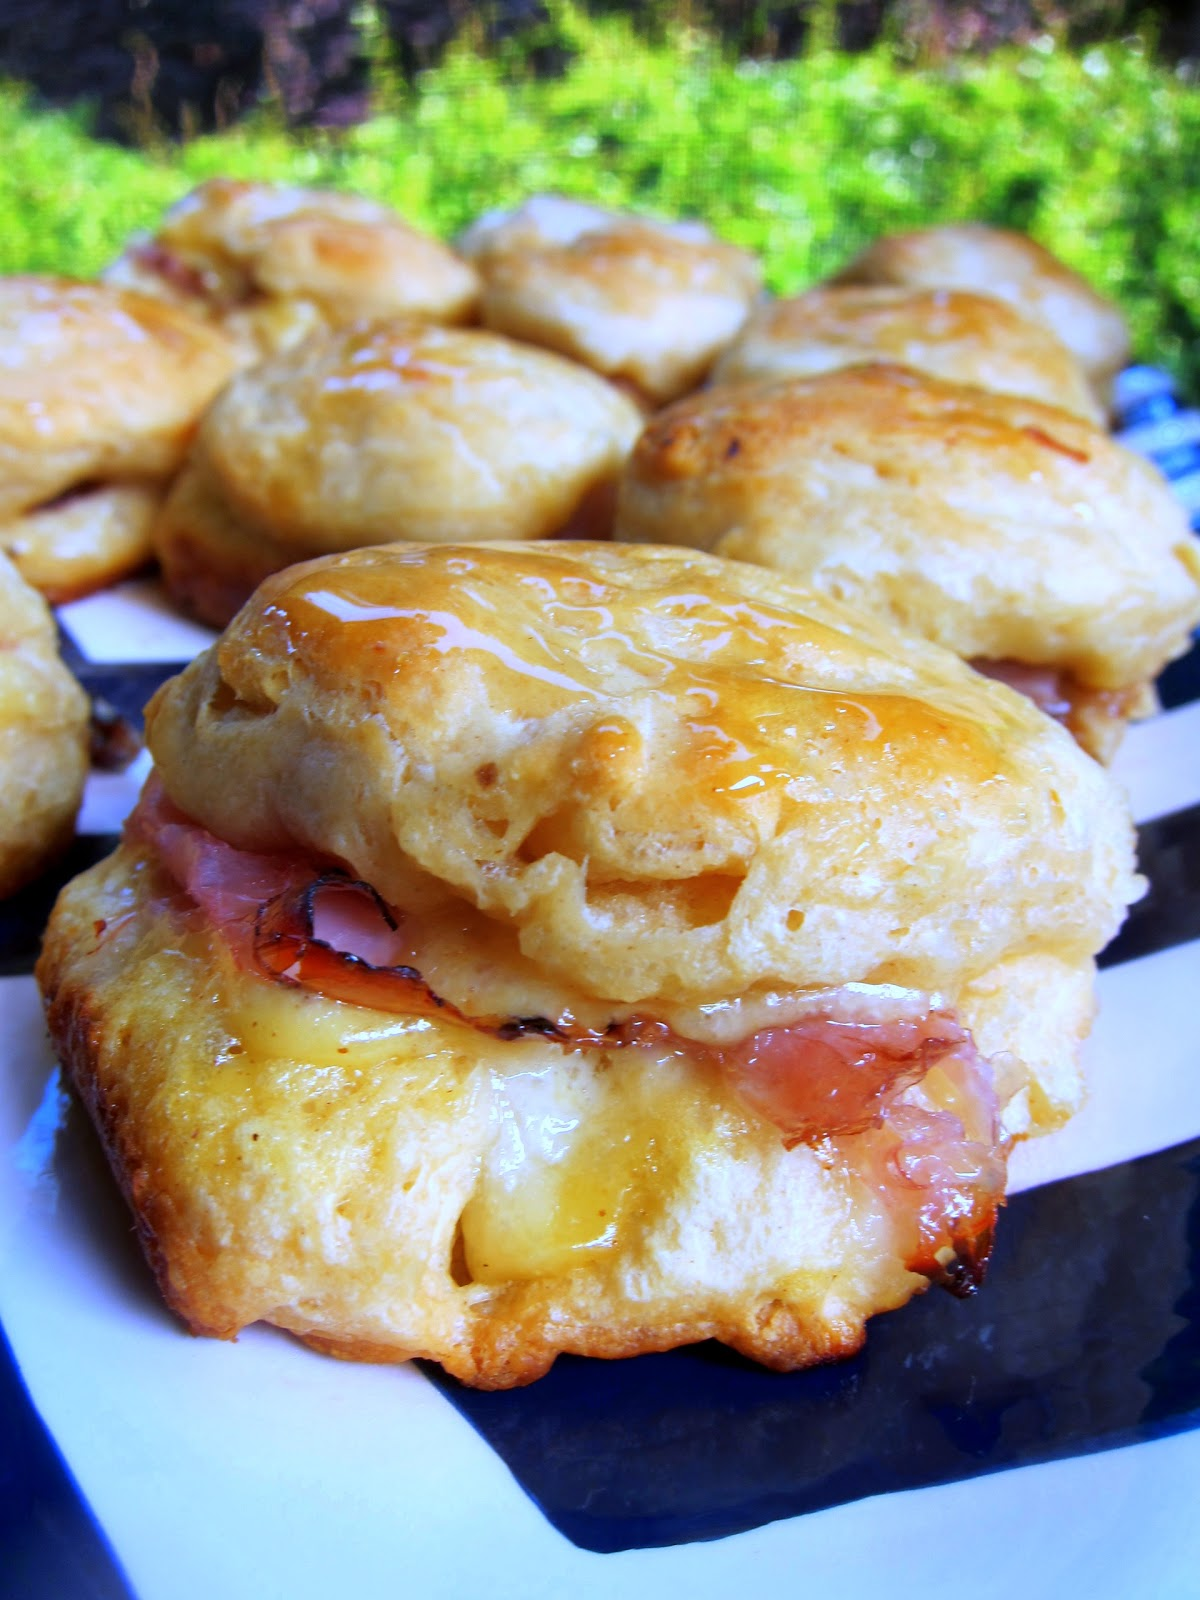 Honey Ham Biscuit Sliders Recipe - refrigerated biscuits, stuffed with ...